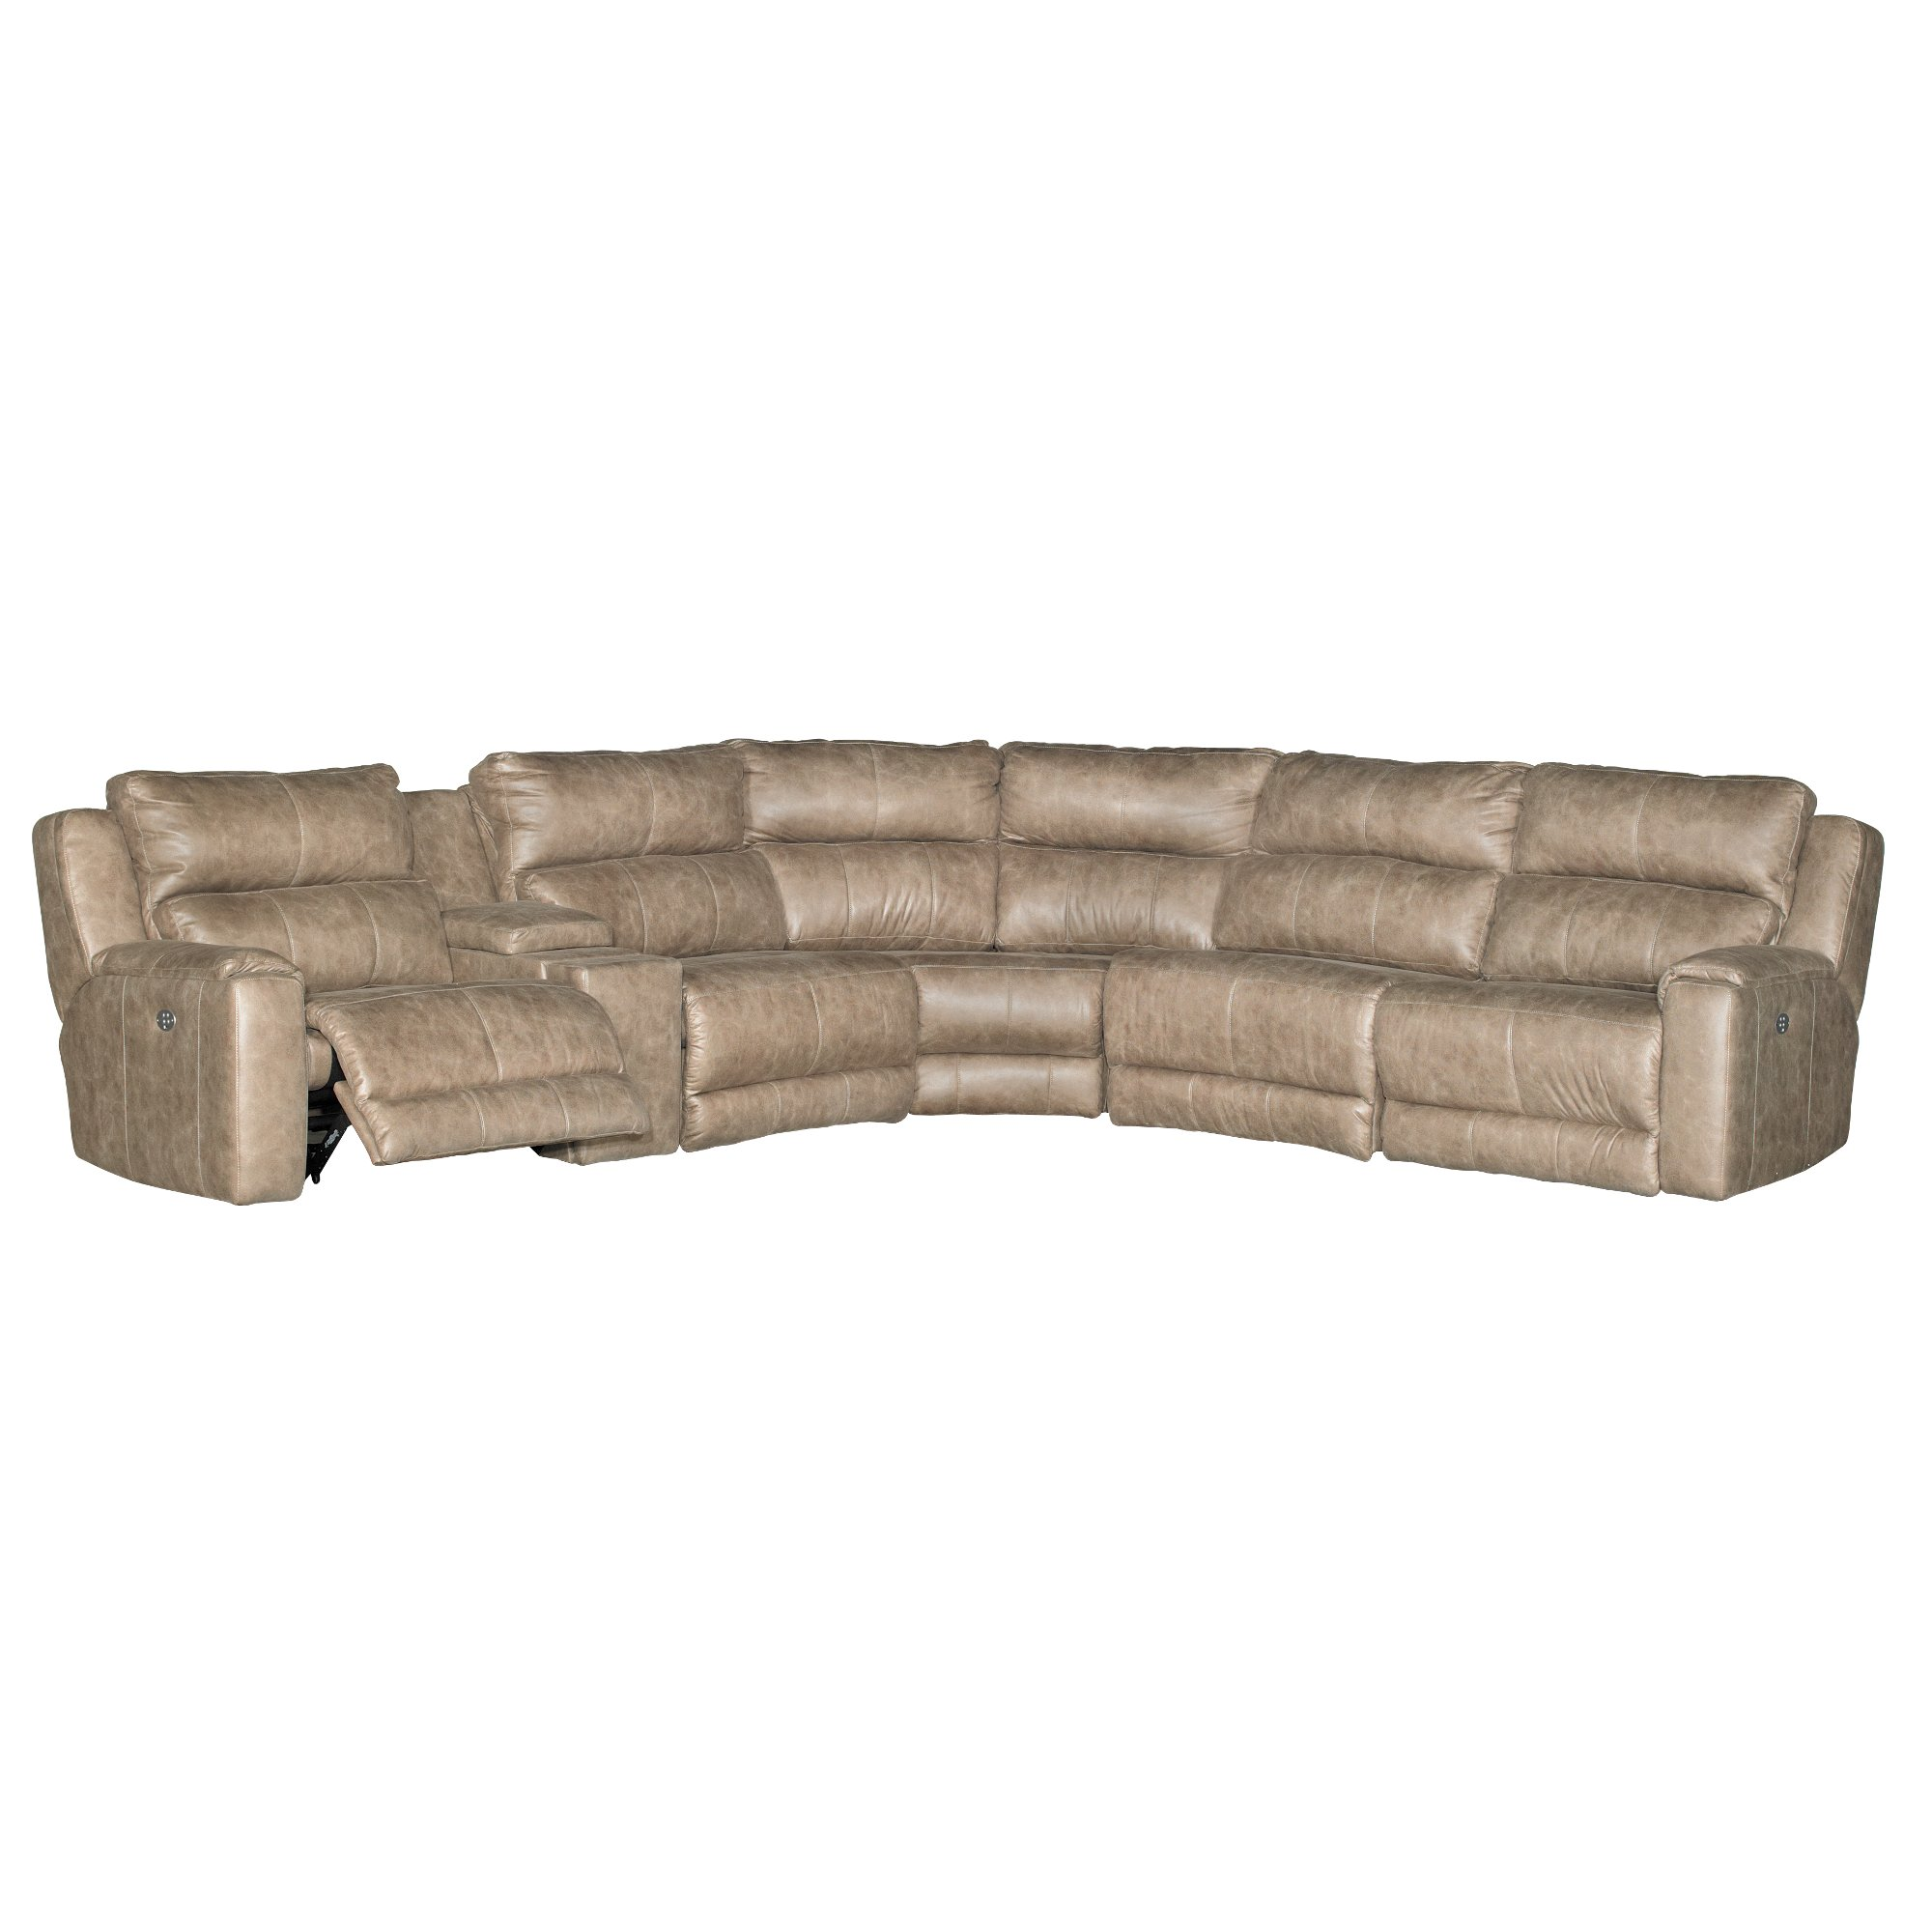 Shop Sectional Sofas And Leather Sectionals   Page 2 | RC Willey Furniture  Store